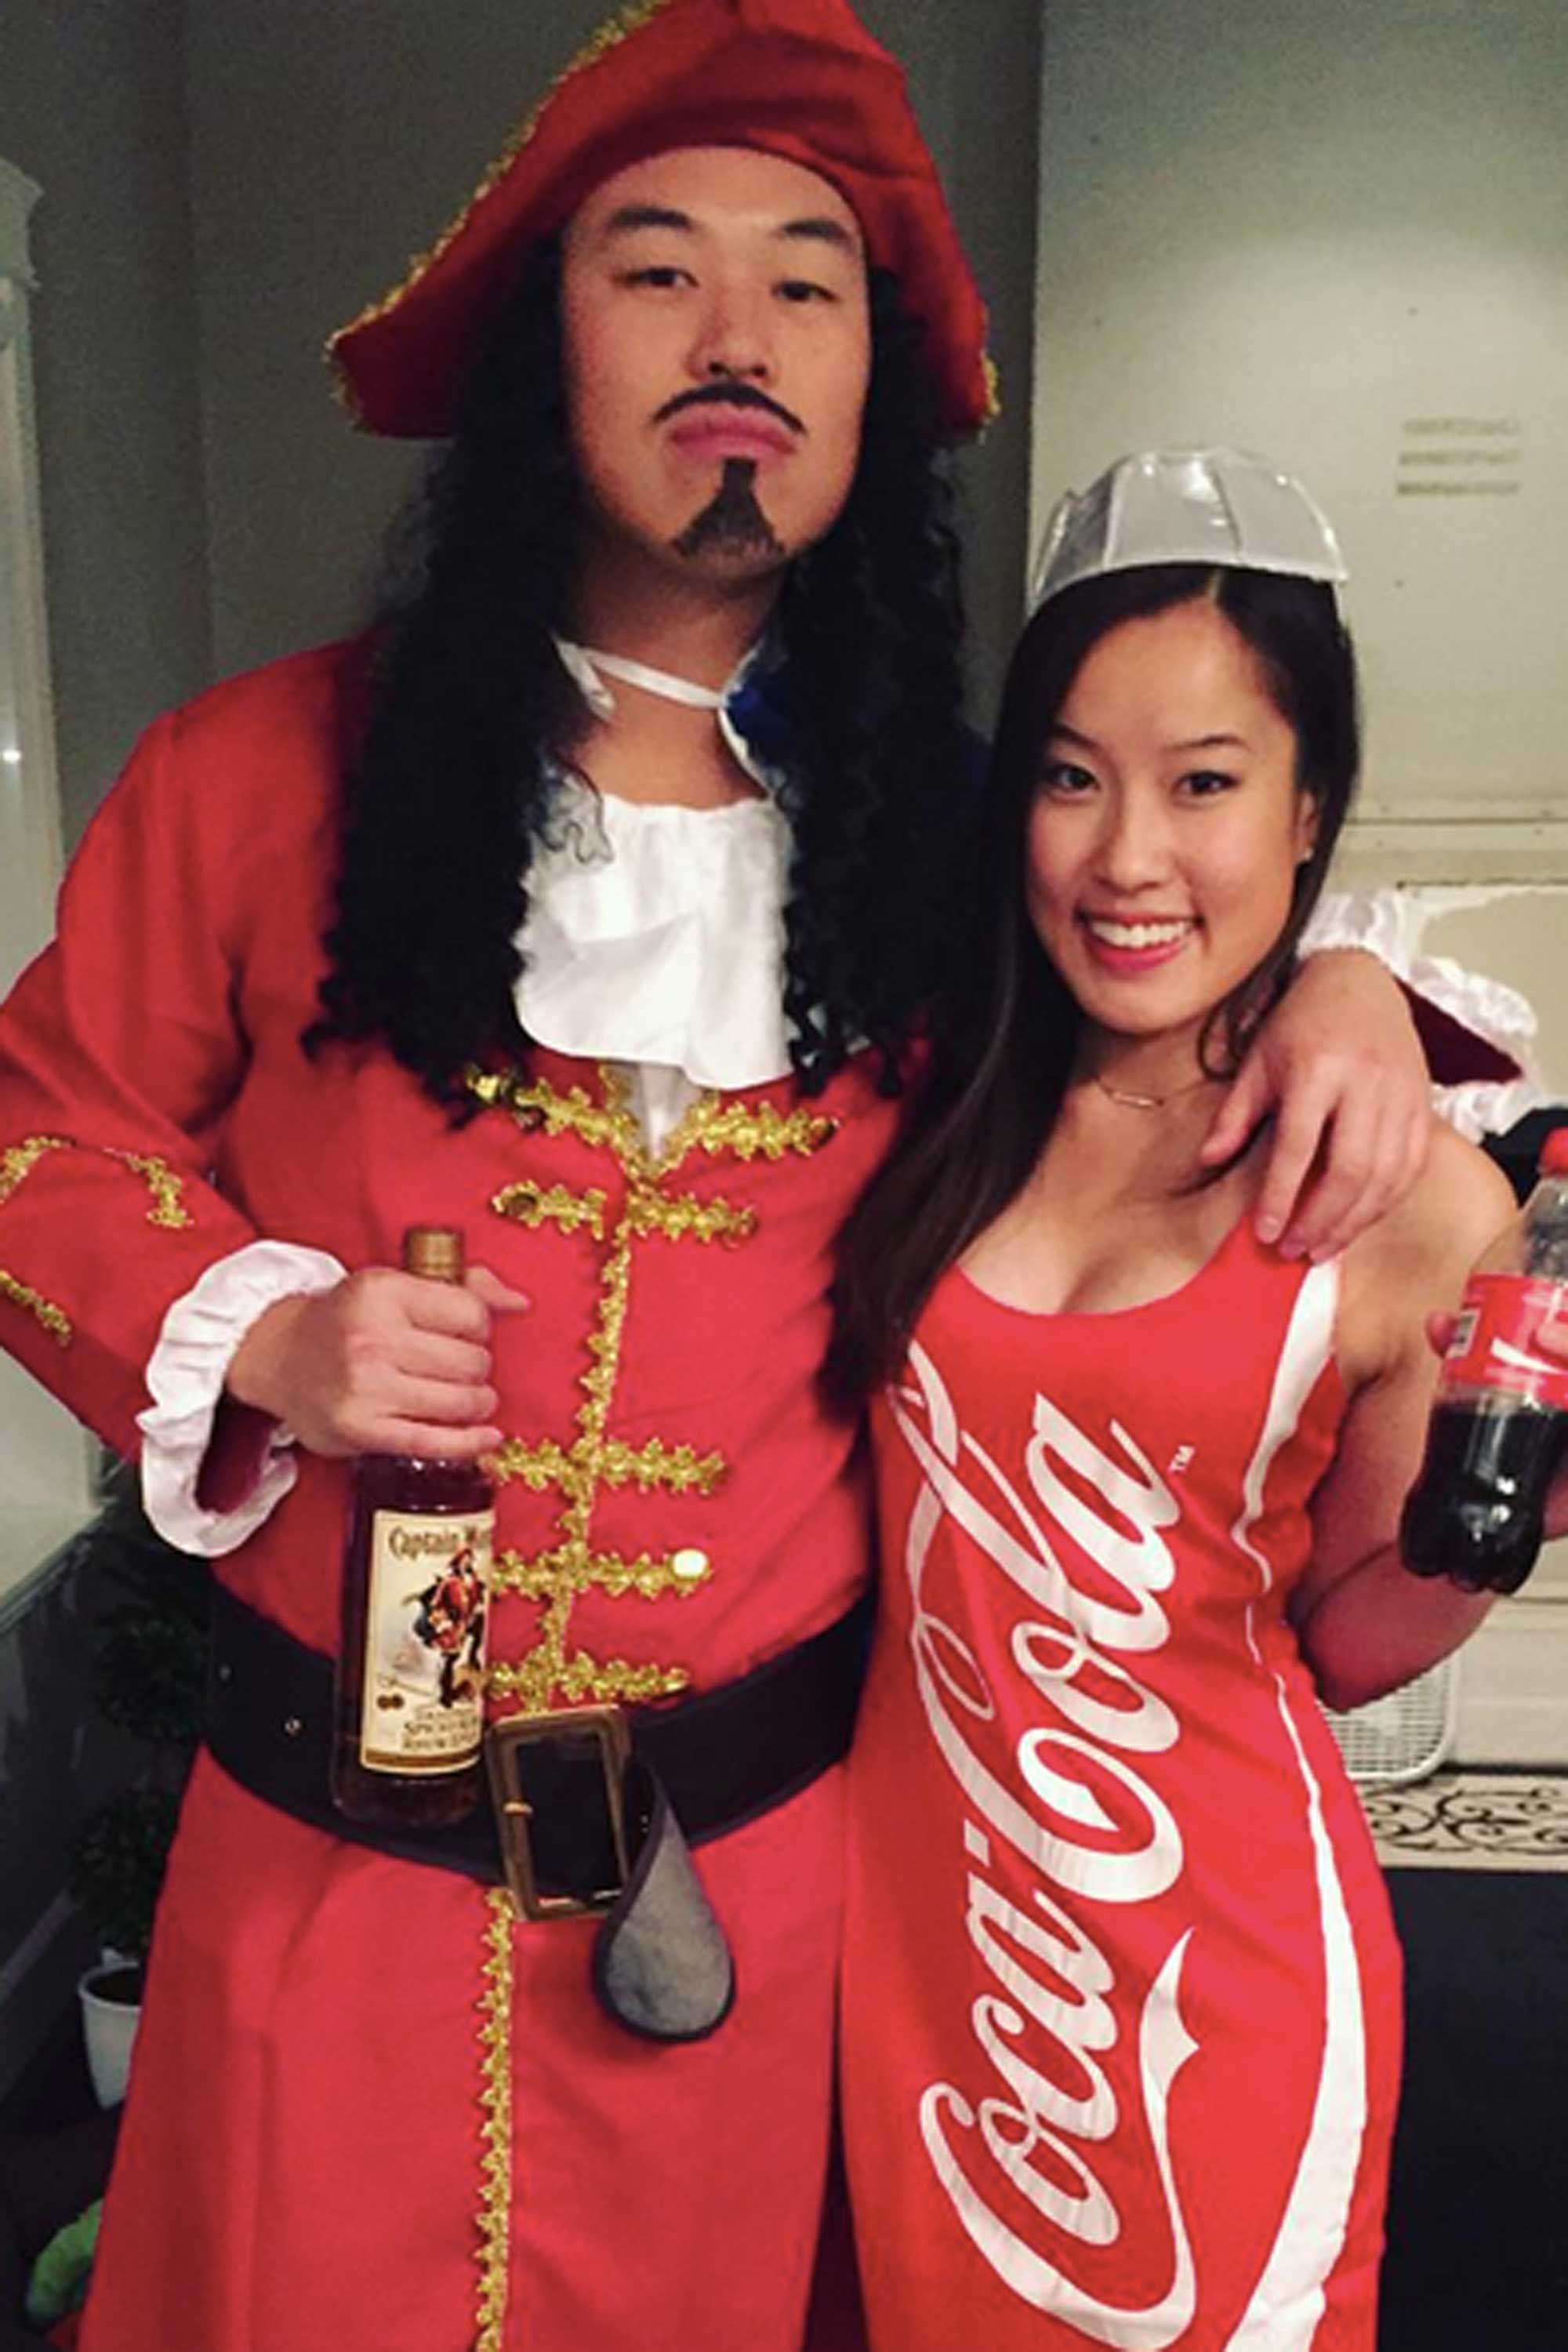 captain and coke costume  sc 1 st  Cosmopolitan & 45 Best Couples Halloween Costumes - Funny Halloween Costume Ideas ...